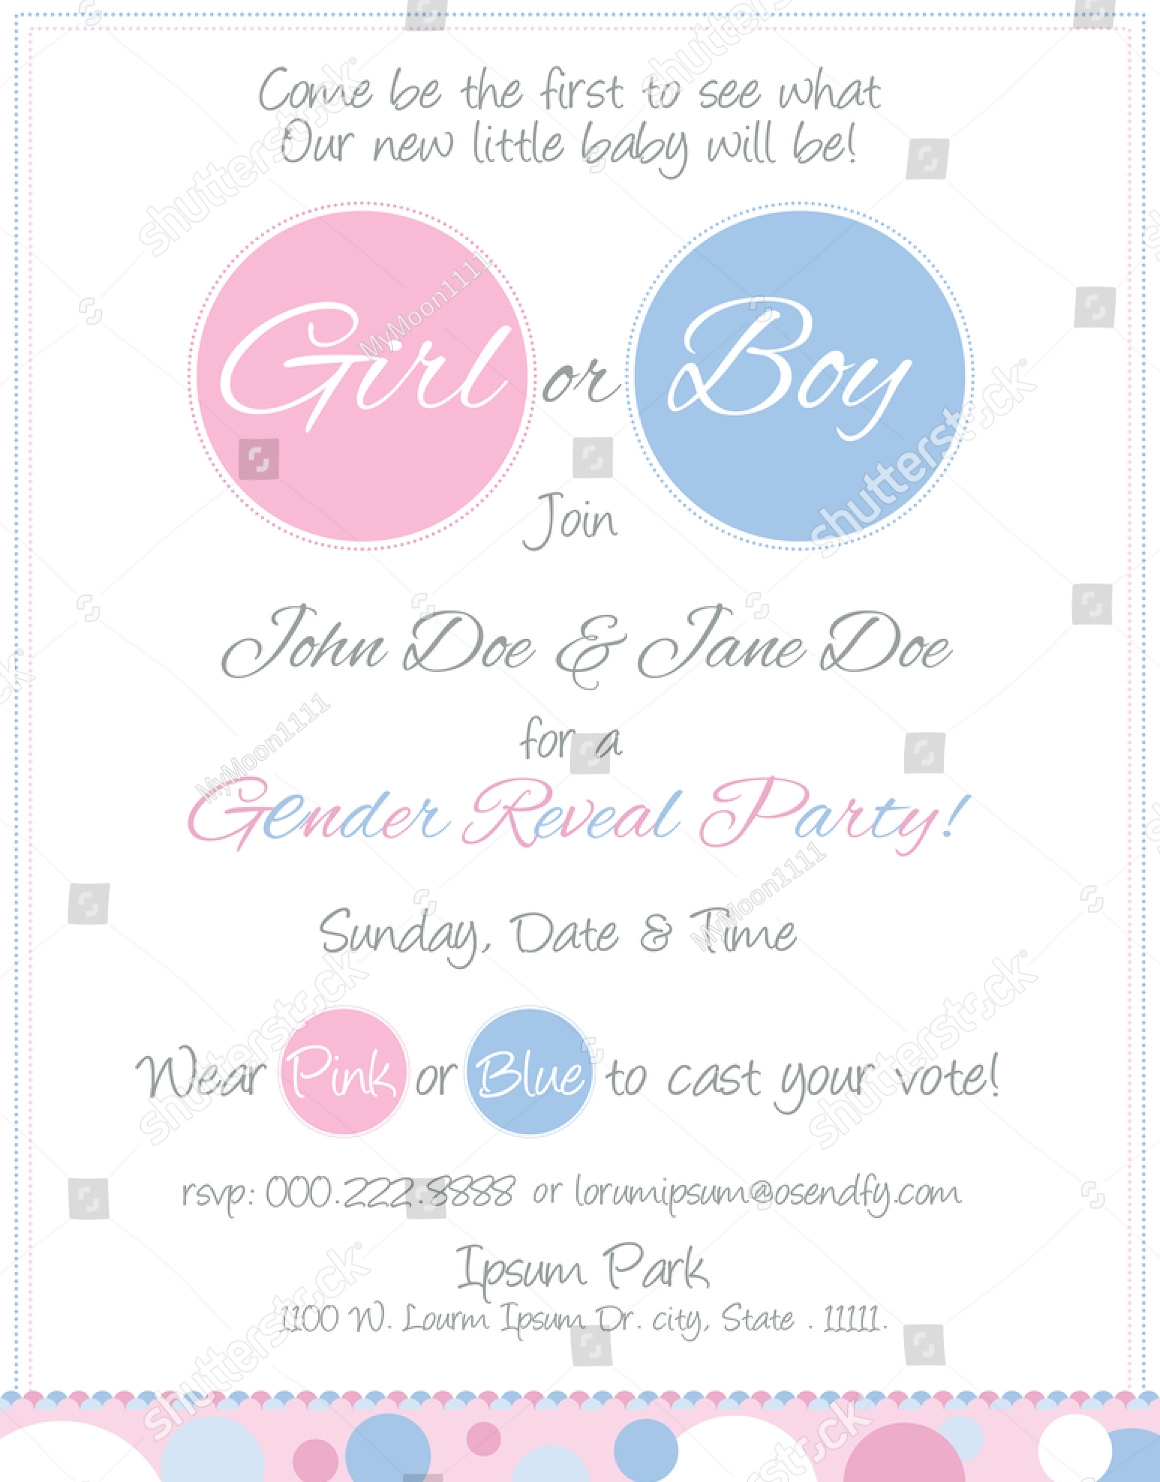 vintage gender reveal party invitation